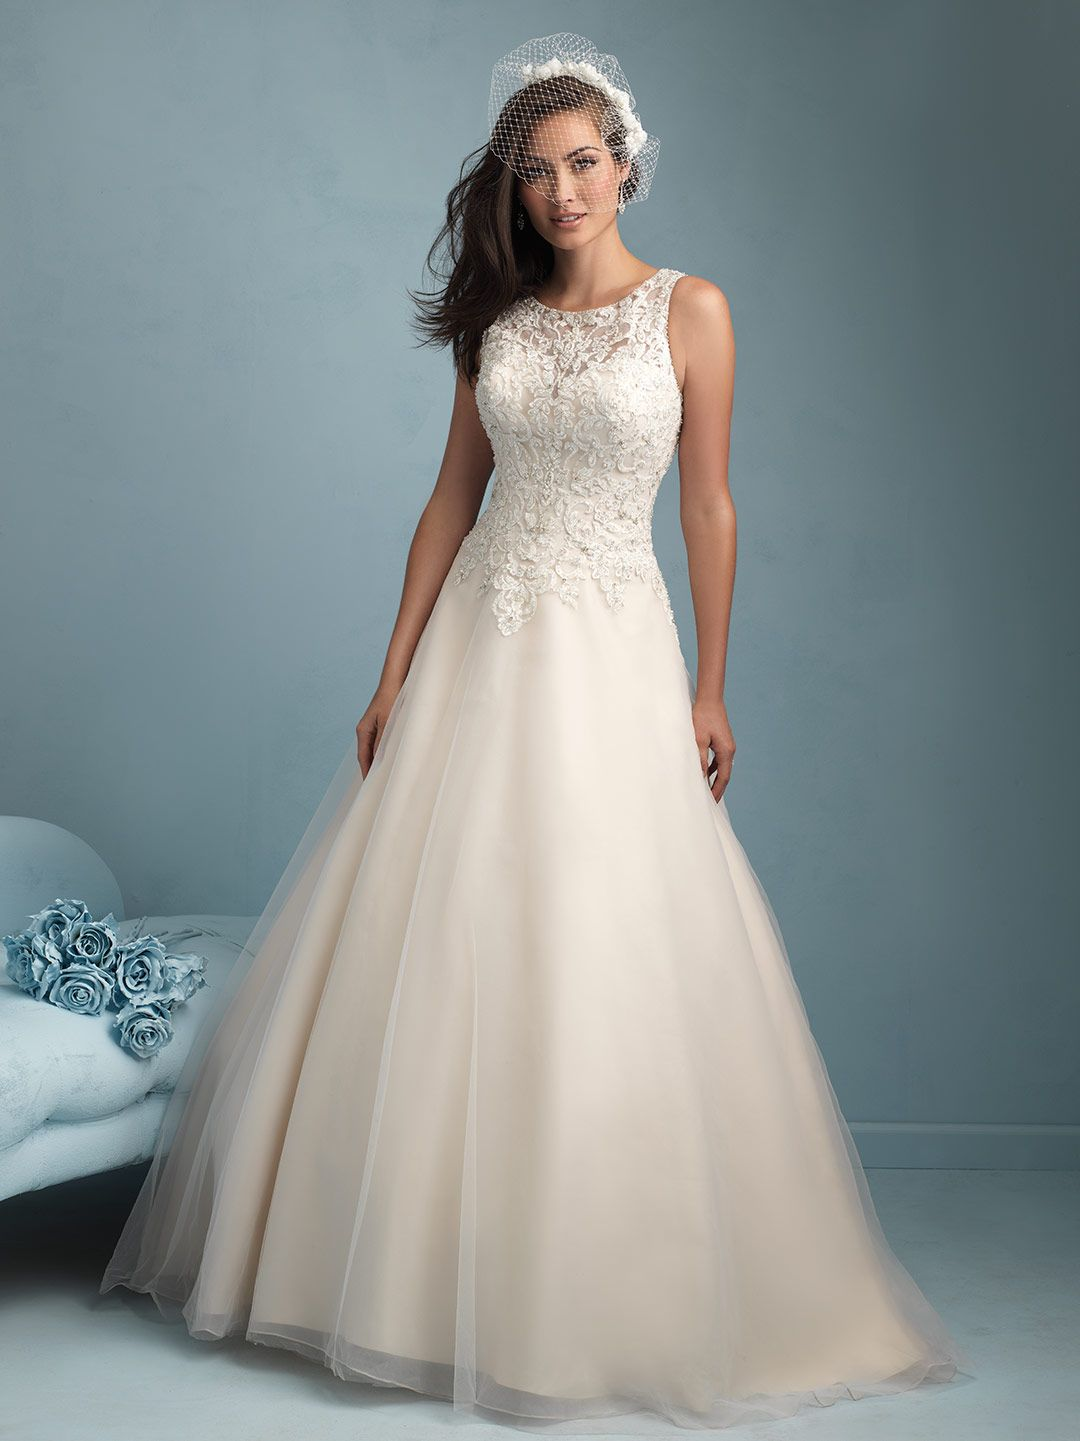 Allure Bridals 9200, $888 Size: 6 | Used Wedding Dresses | wedding ...